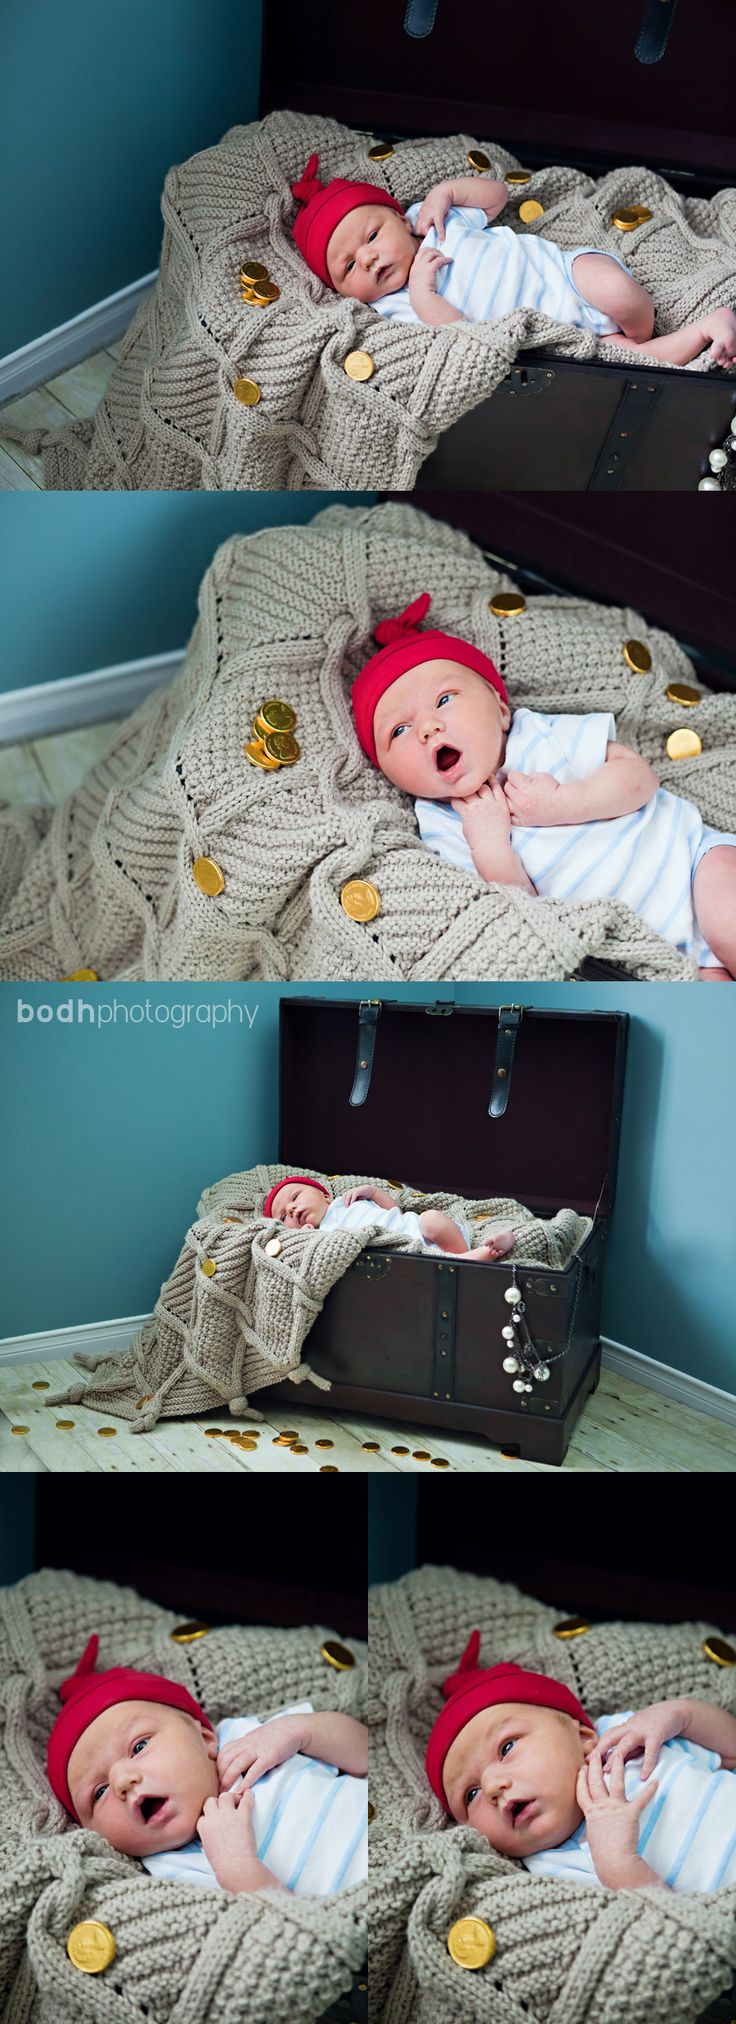 Oh... so sweet, pirate babies. I kinda want a treasure chest just for this.